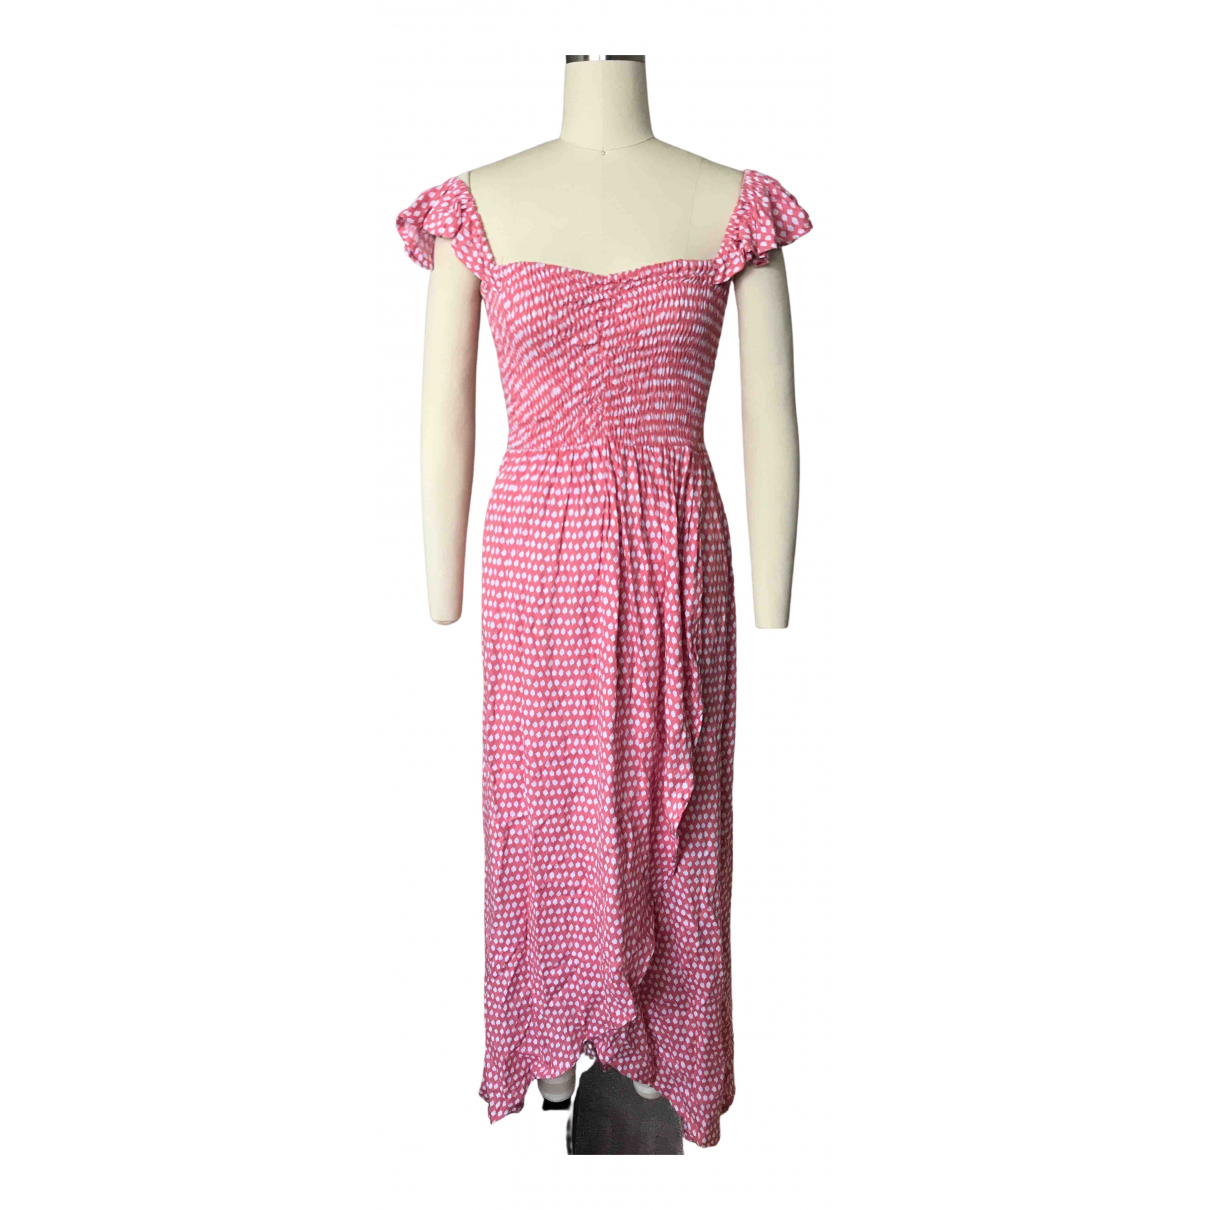 Non Signé / Unsigned N Pink dress for Women One Size International